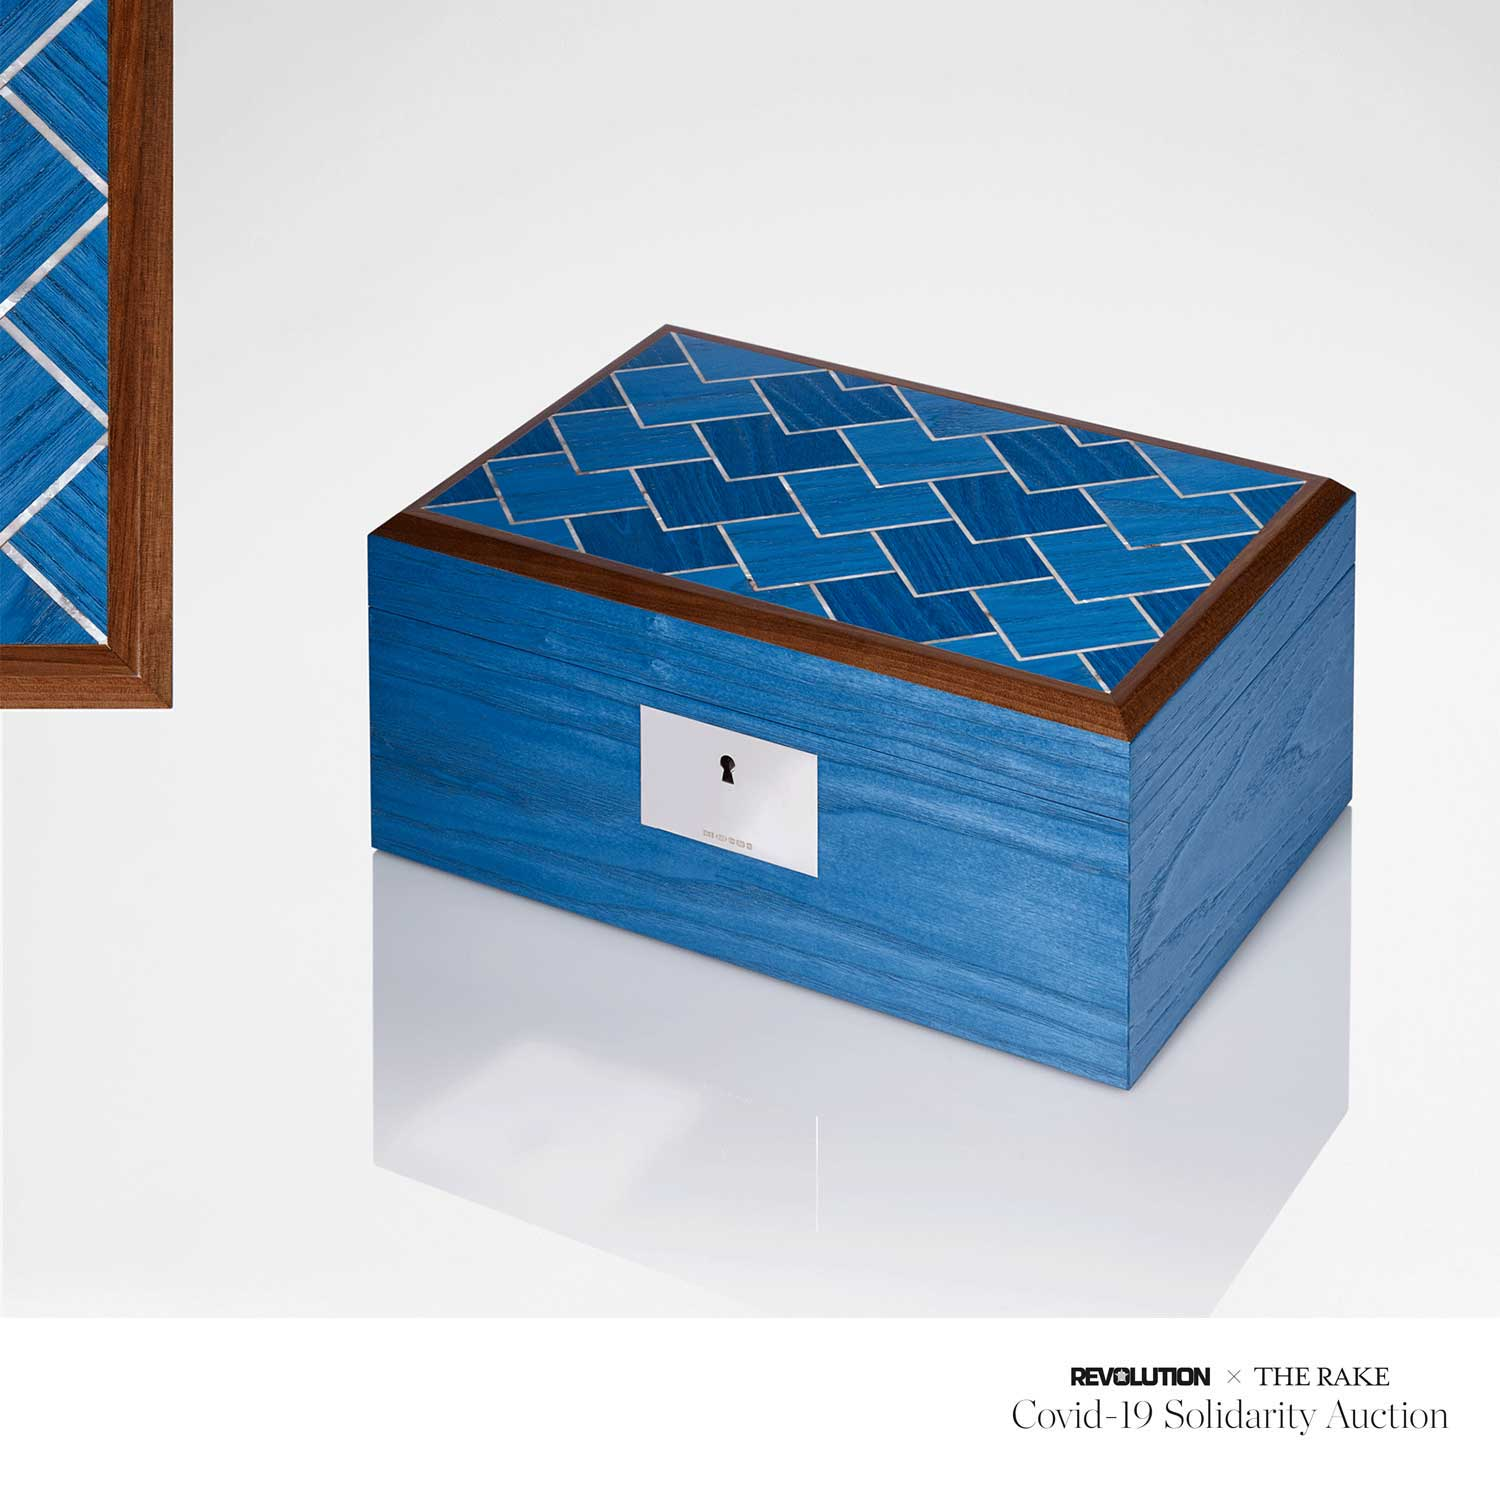 Linley Azure Vermillion Jewellery Box for Revolution x The Rake Covid-19 Solidarity Auction